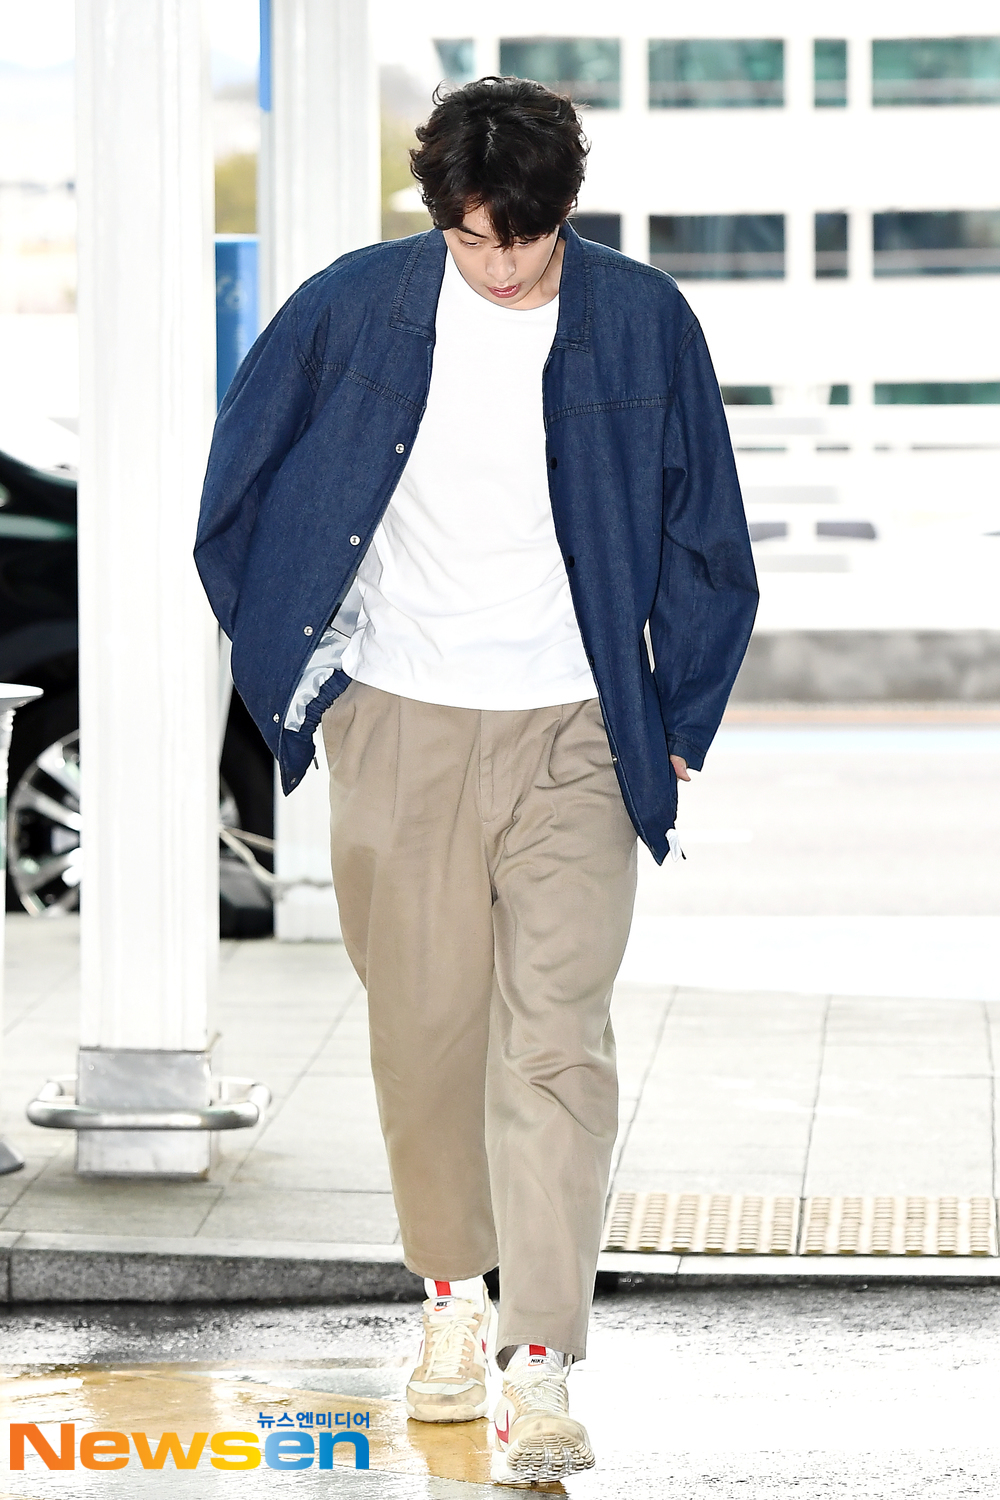 <p>Actor Nam Joo-hyuk(NamJoohyuk)4 10 am Incheon Jung-operation in Incheon International Airport through overseas schedule to attend a car Bangkok, Thailand with departure.</p><p>Actor Nam Joo-hyuk(NamJoohyuk)this Airport fashion, and Bangkok, Thailand with departure.</p>